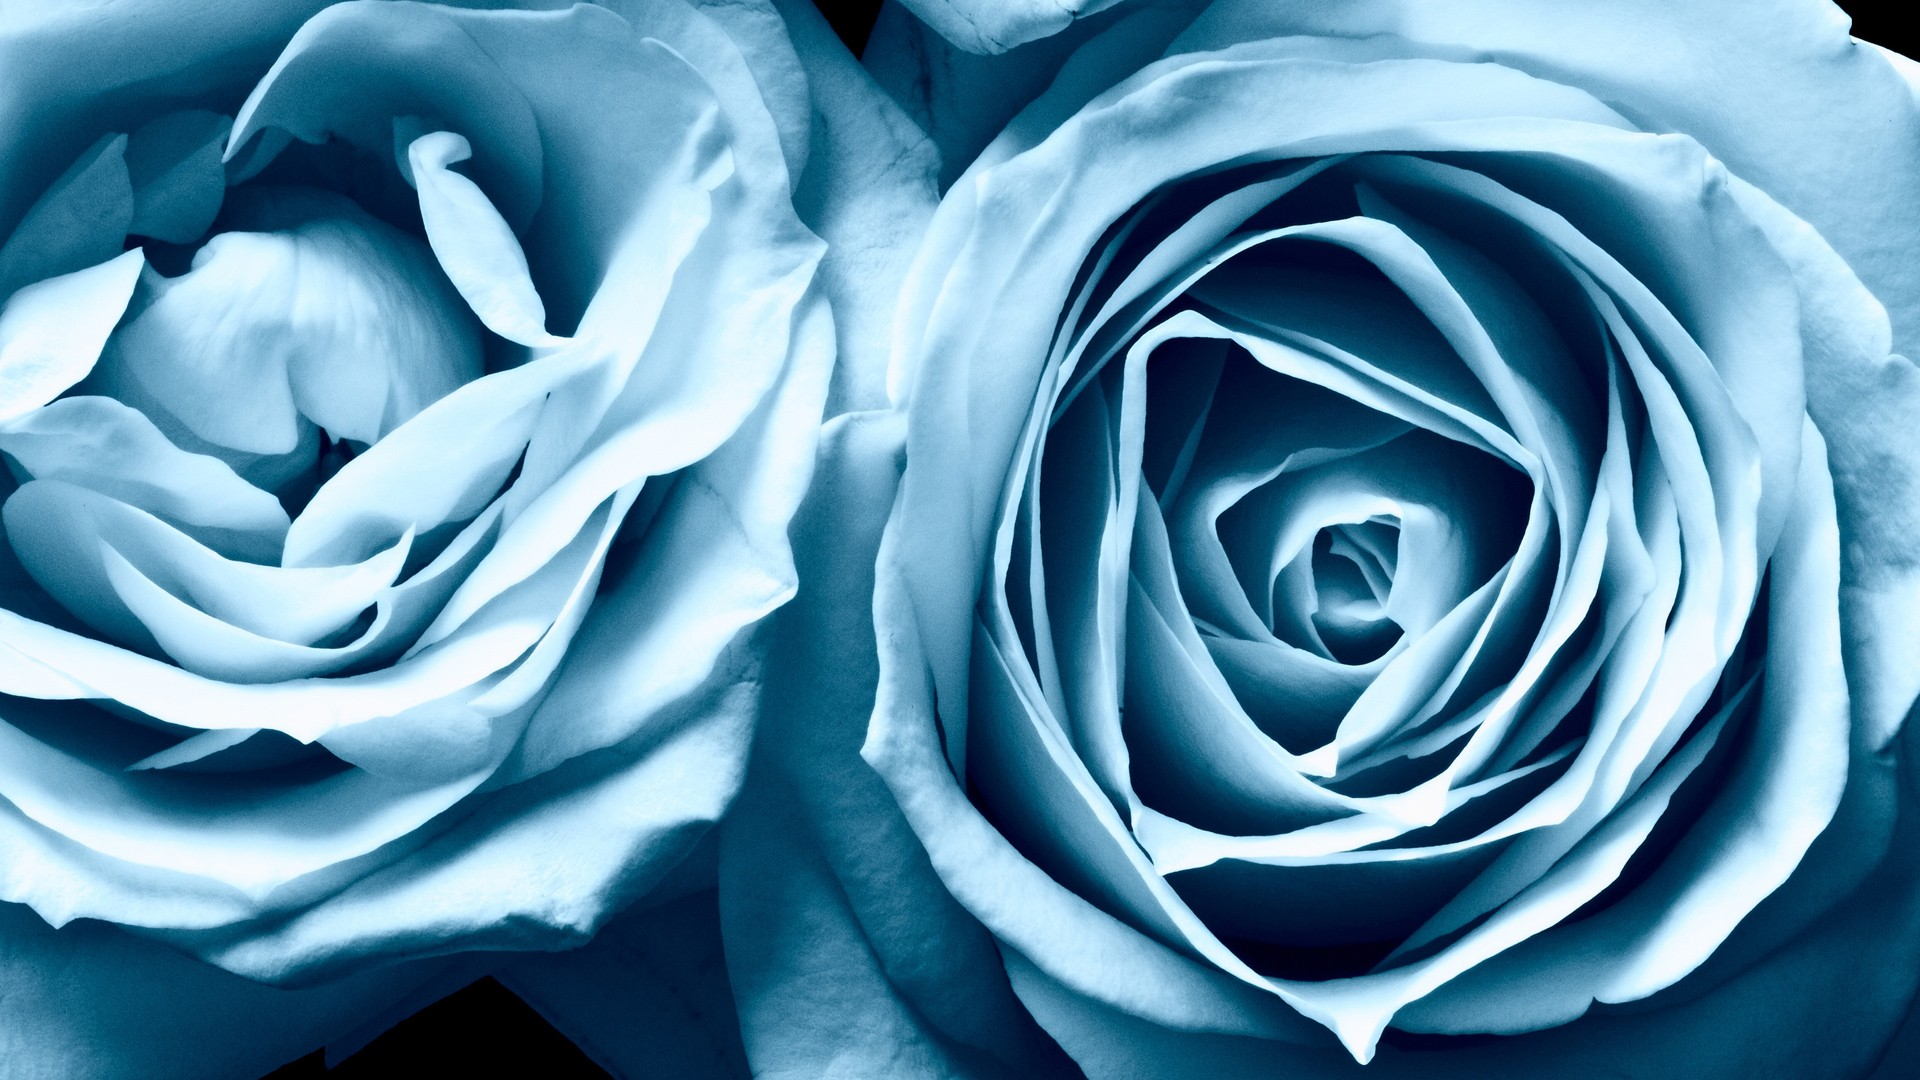 Blue Roses Widescreen Wallpapers  HD Wallpapers  ID 6454